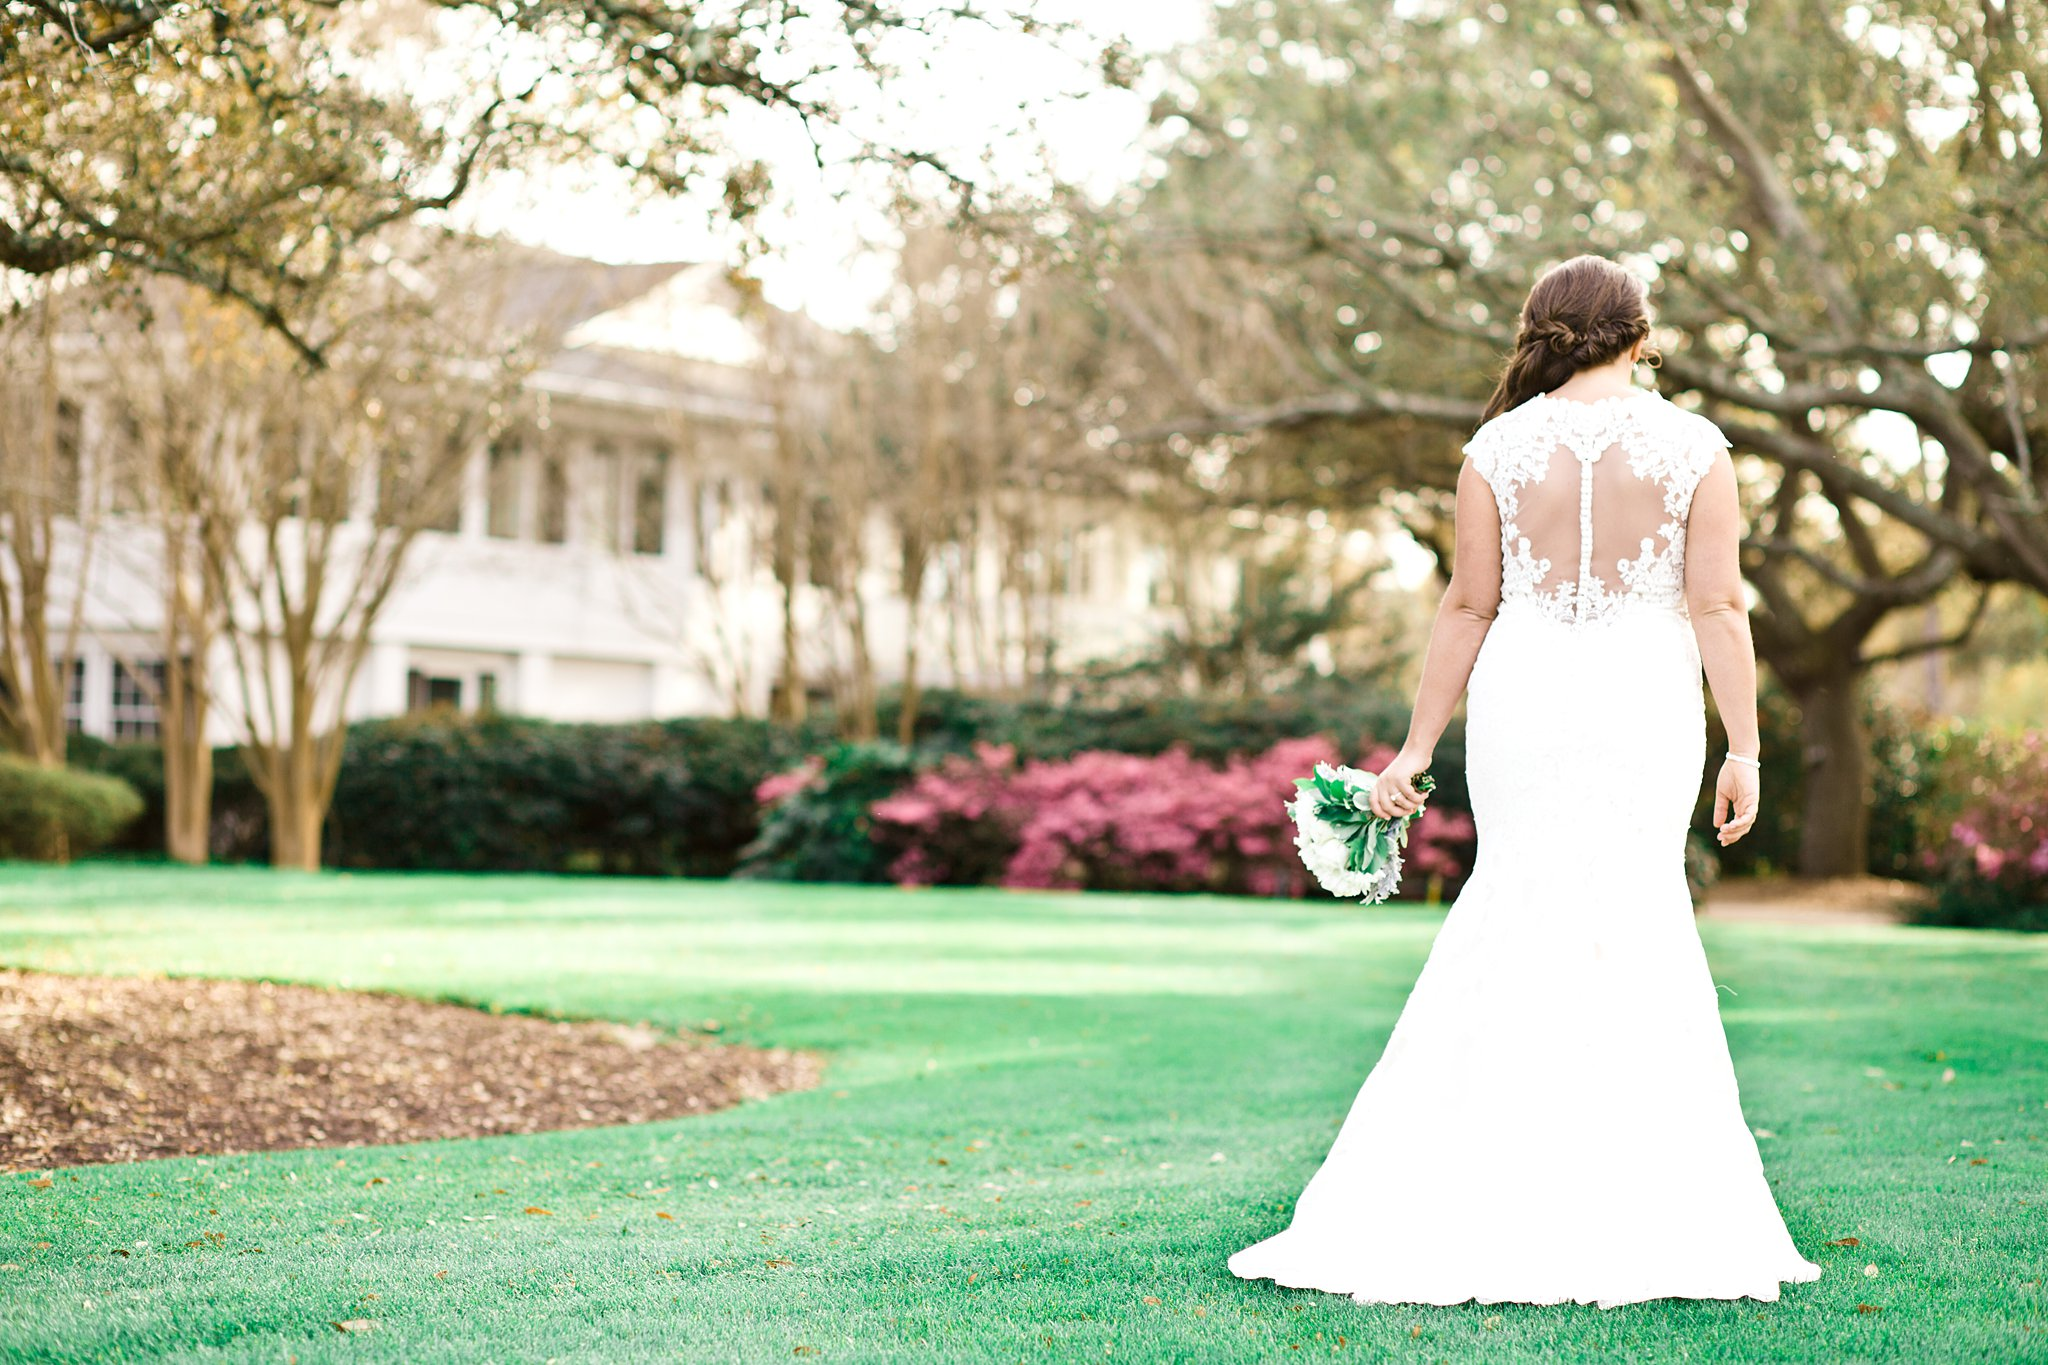 litchfield-golf-country-club-bridal-session-pawleys-island-sc-photos_0110.jpg